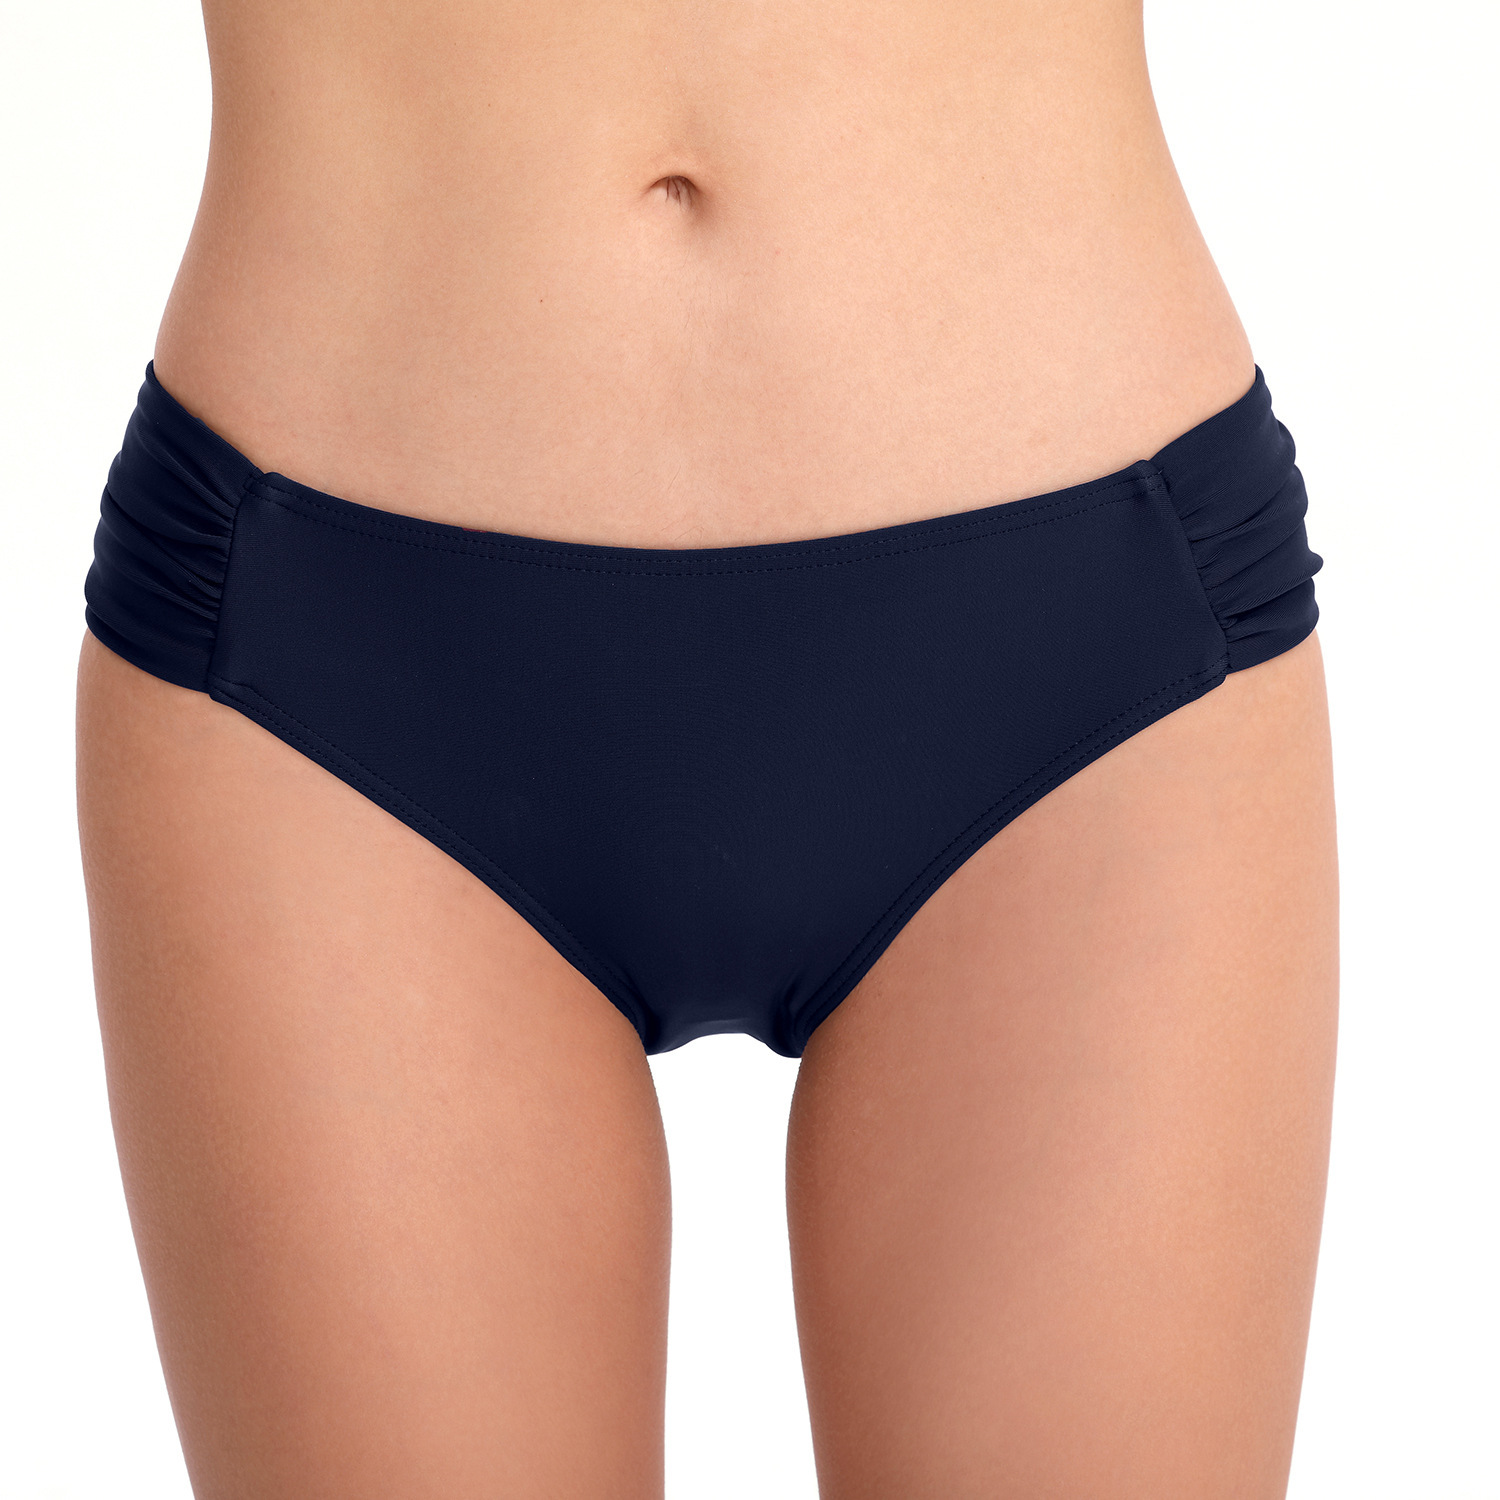 Europe And America New Style Swimming Trunks Conservative Pleated WOMEN'S Panties Sexy Solid Color Swimming Trunks